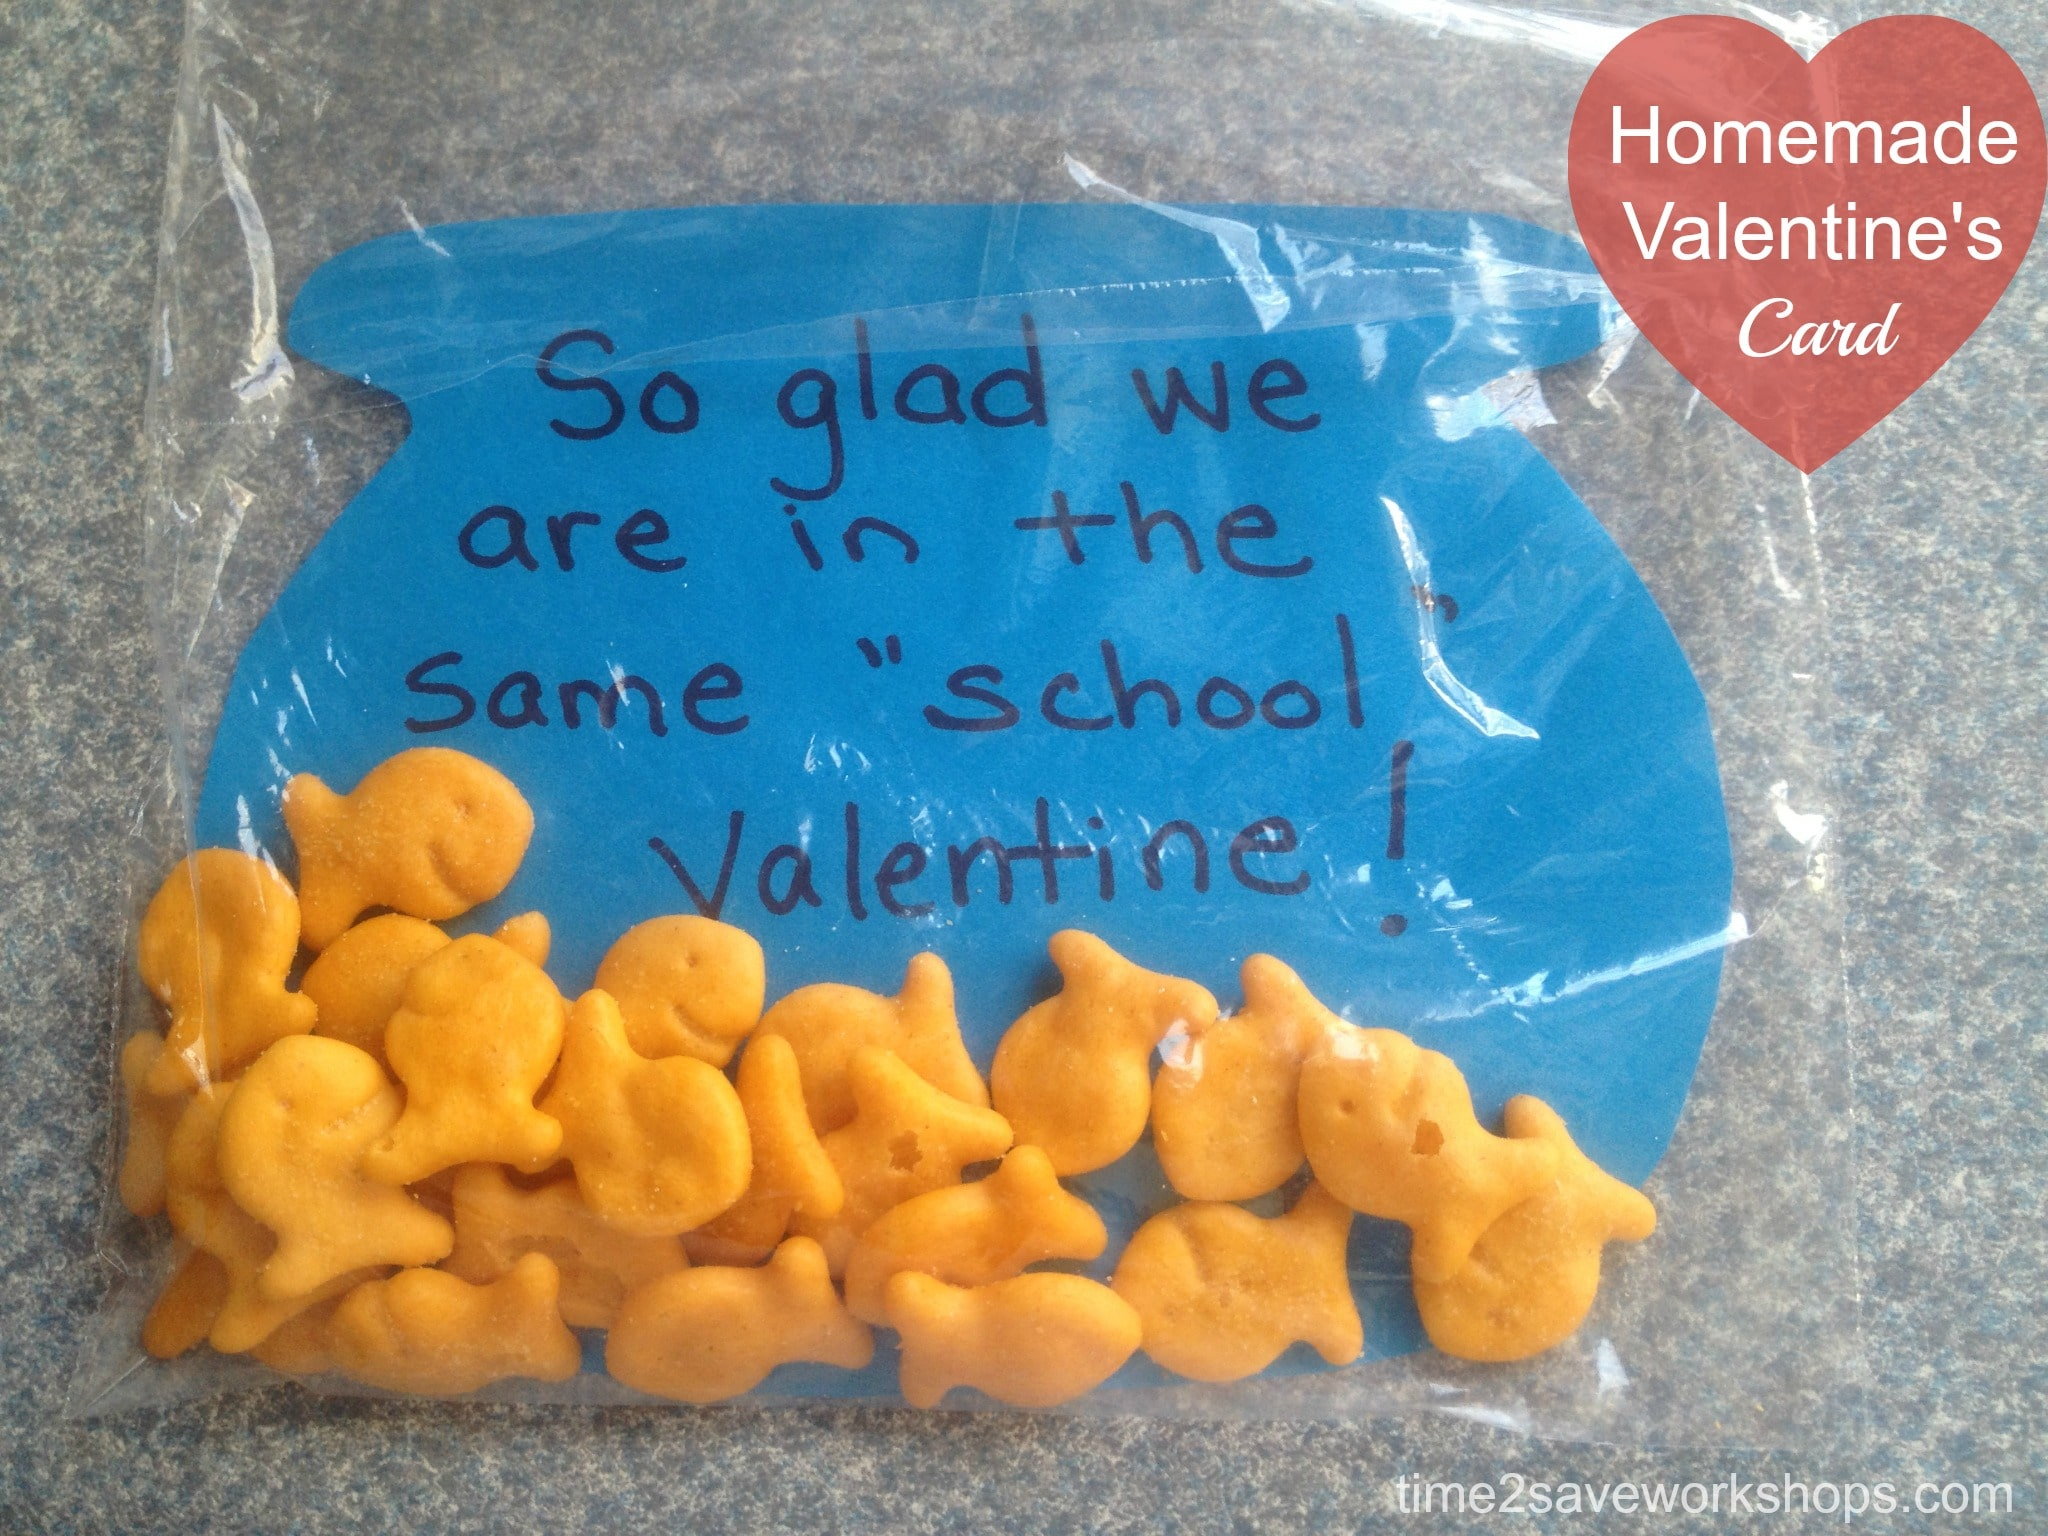 Homemade Valentine Cards DIY Goldfish Valentines Day Greetings – How to Make Valentine Cards for School